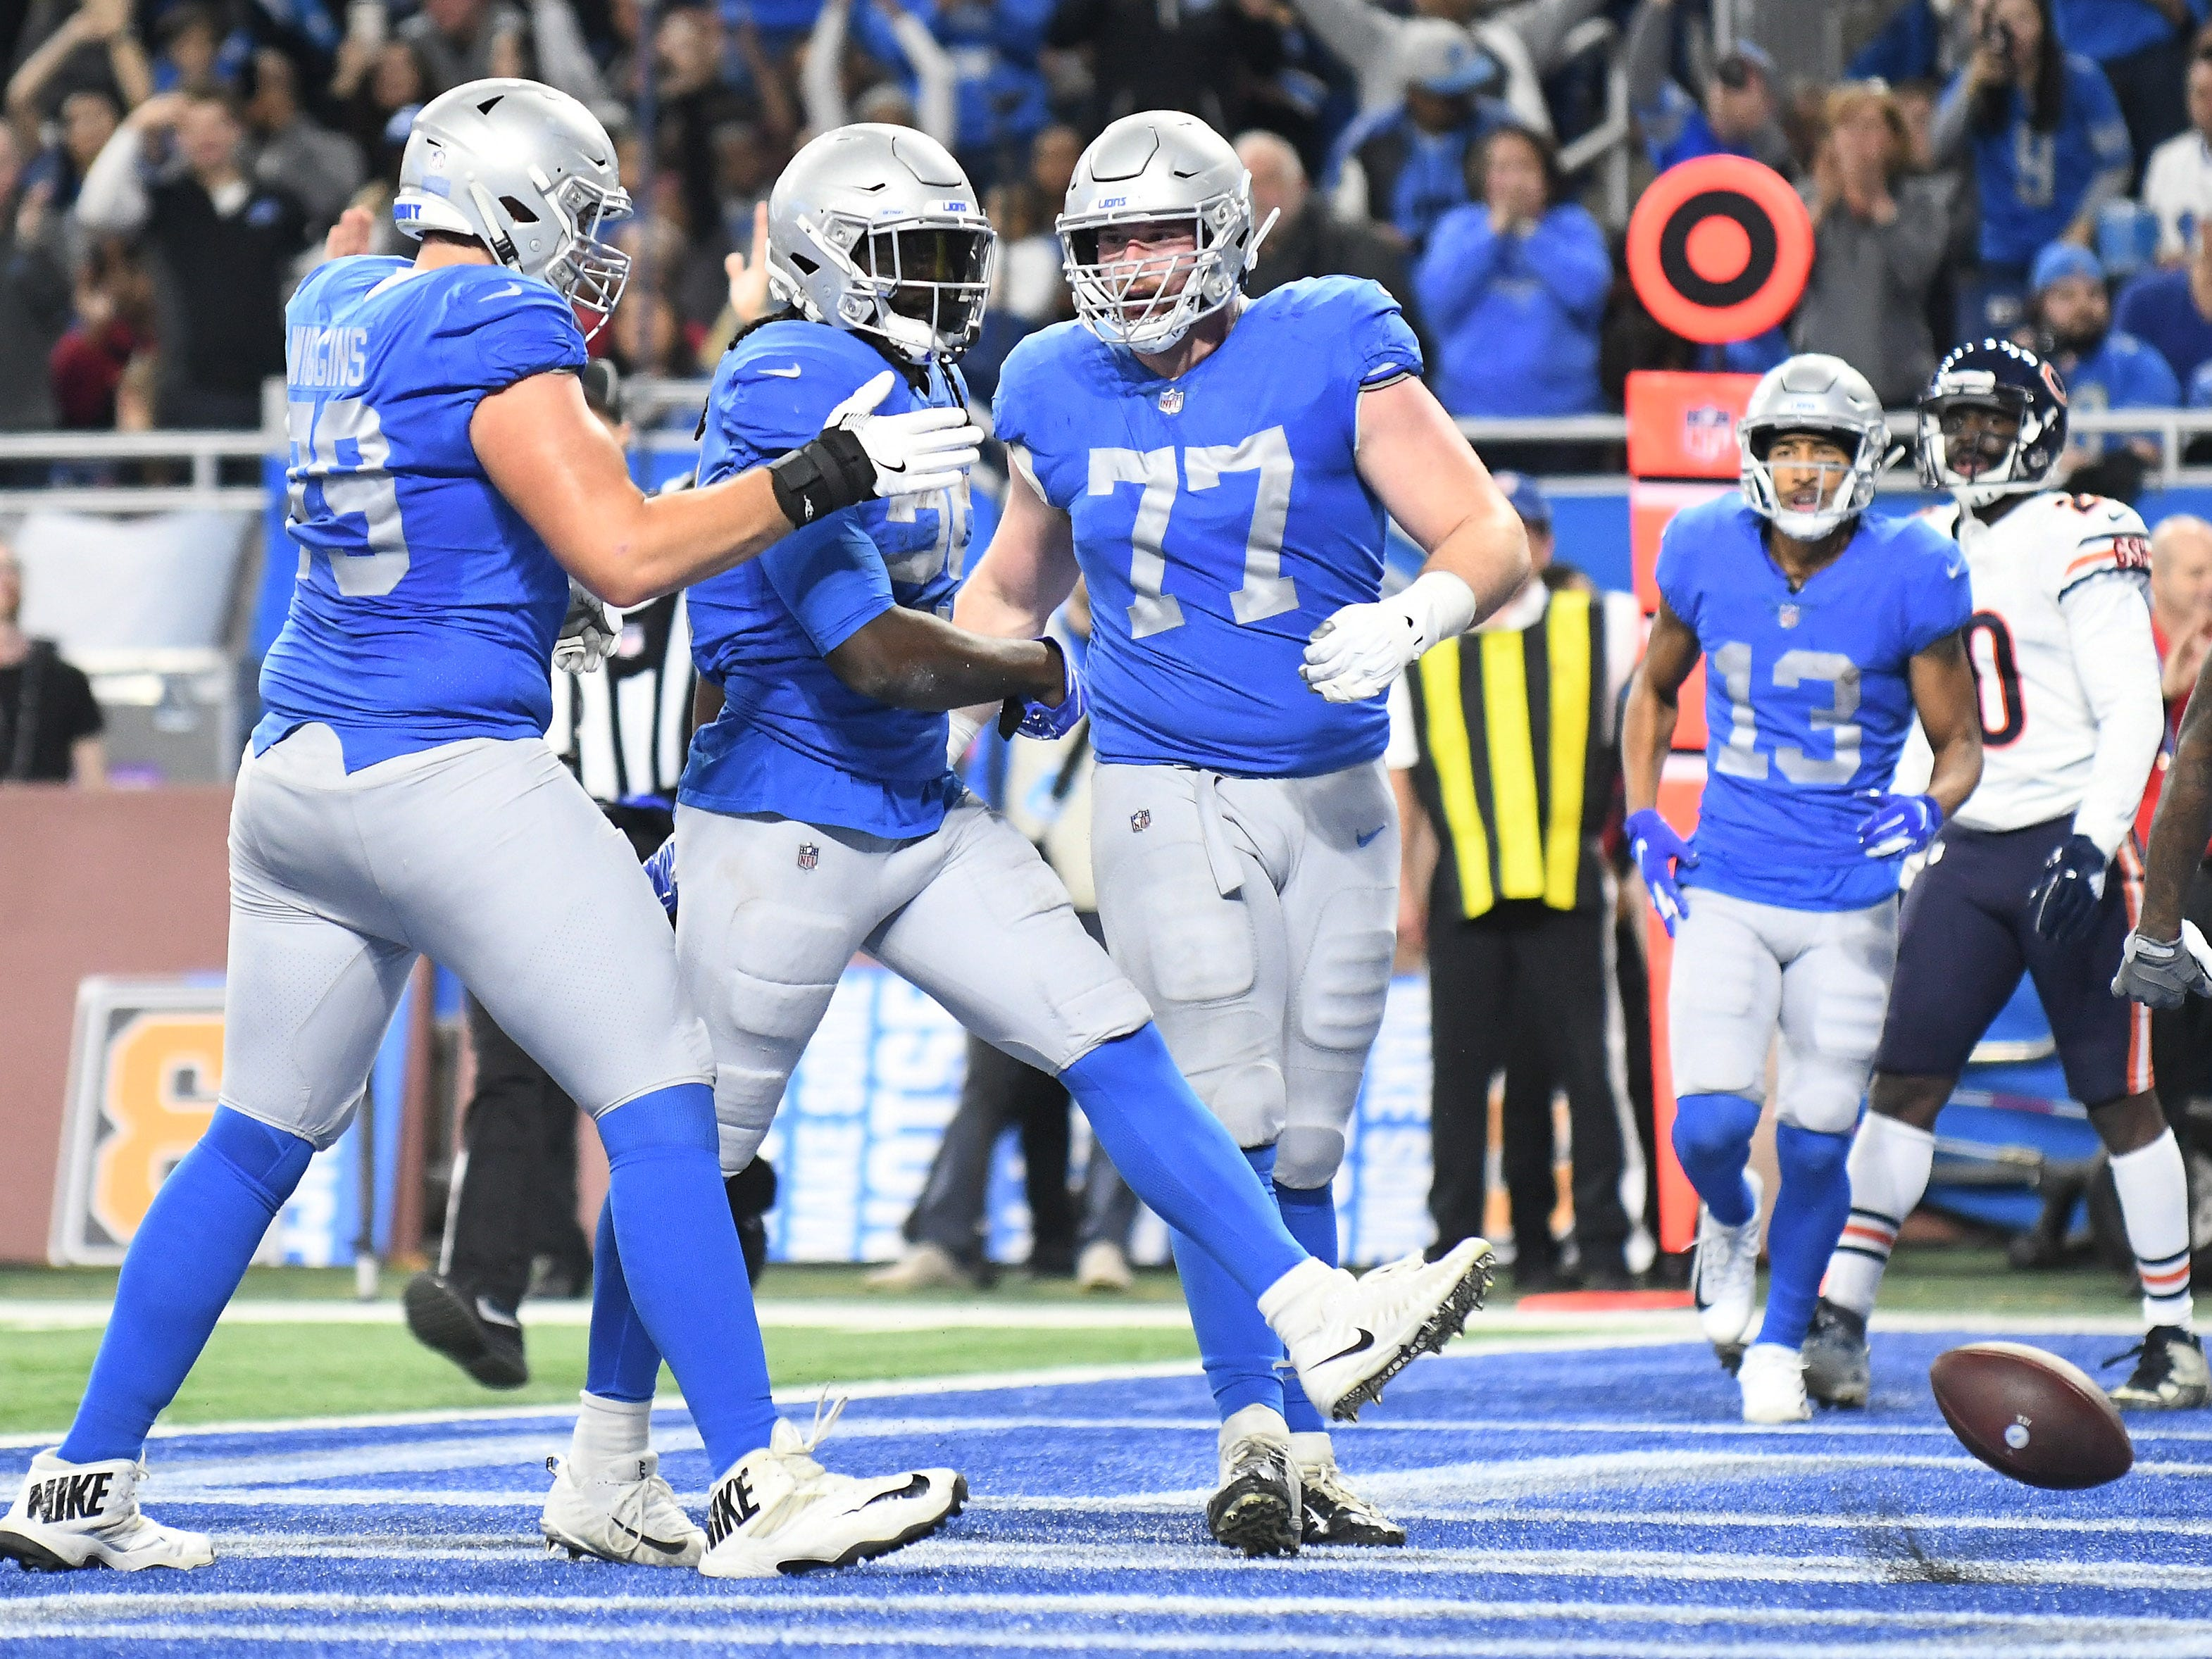 Lions' LaGarrette Blount, center, celebrates his second half touchdown with Kenny Wiggins, left, and Frank Ragnow (77) In the second quarter. Detroit Lions vs Chicago Bears on Thanksgiving Day at Ford Field in Detroit on Nov. 22, 2018. 